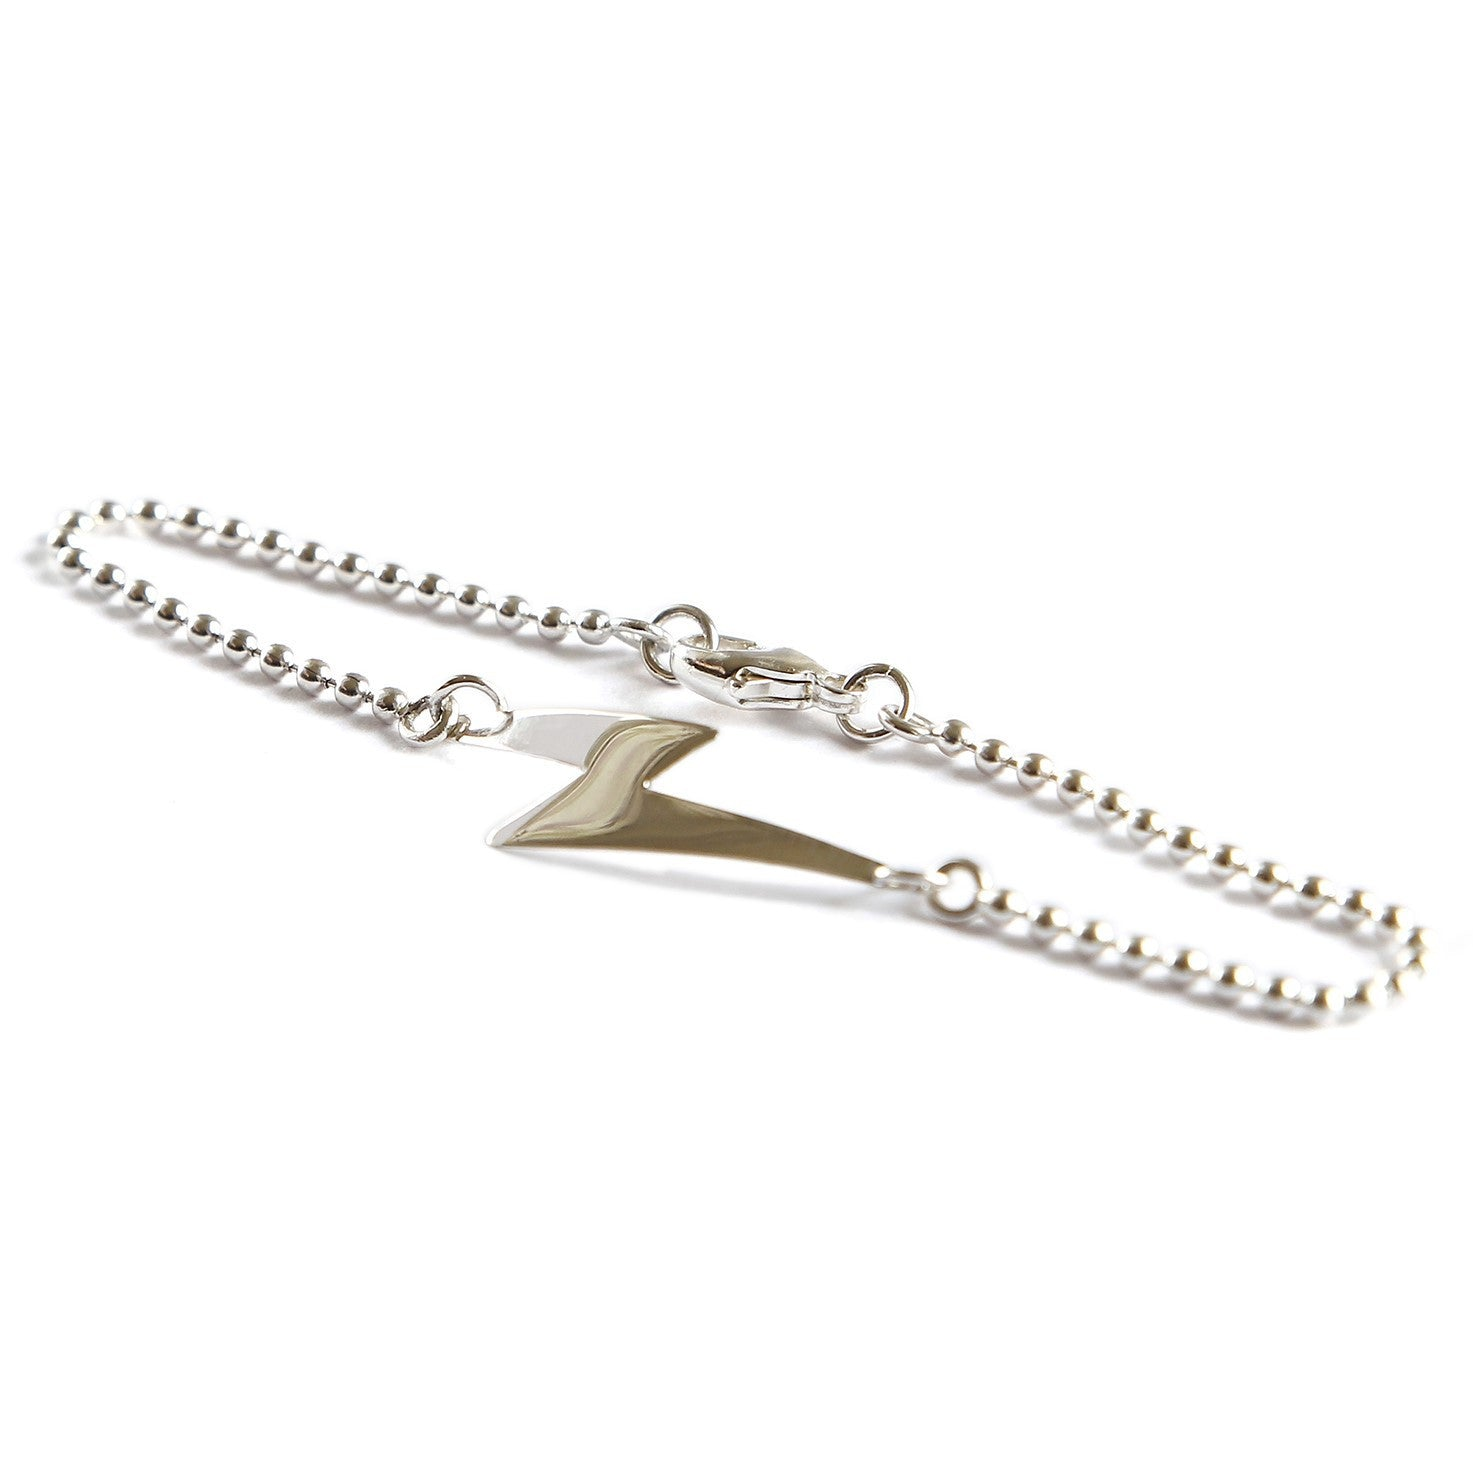 Get your rock on with the Bowie inspired Lightning Bolt Bracelet